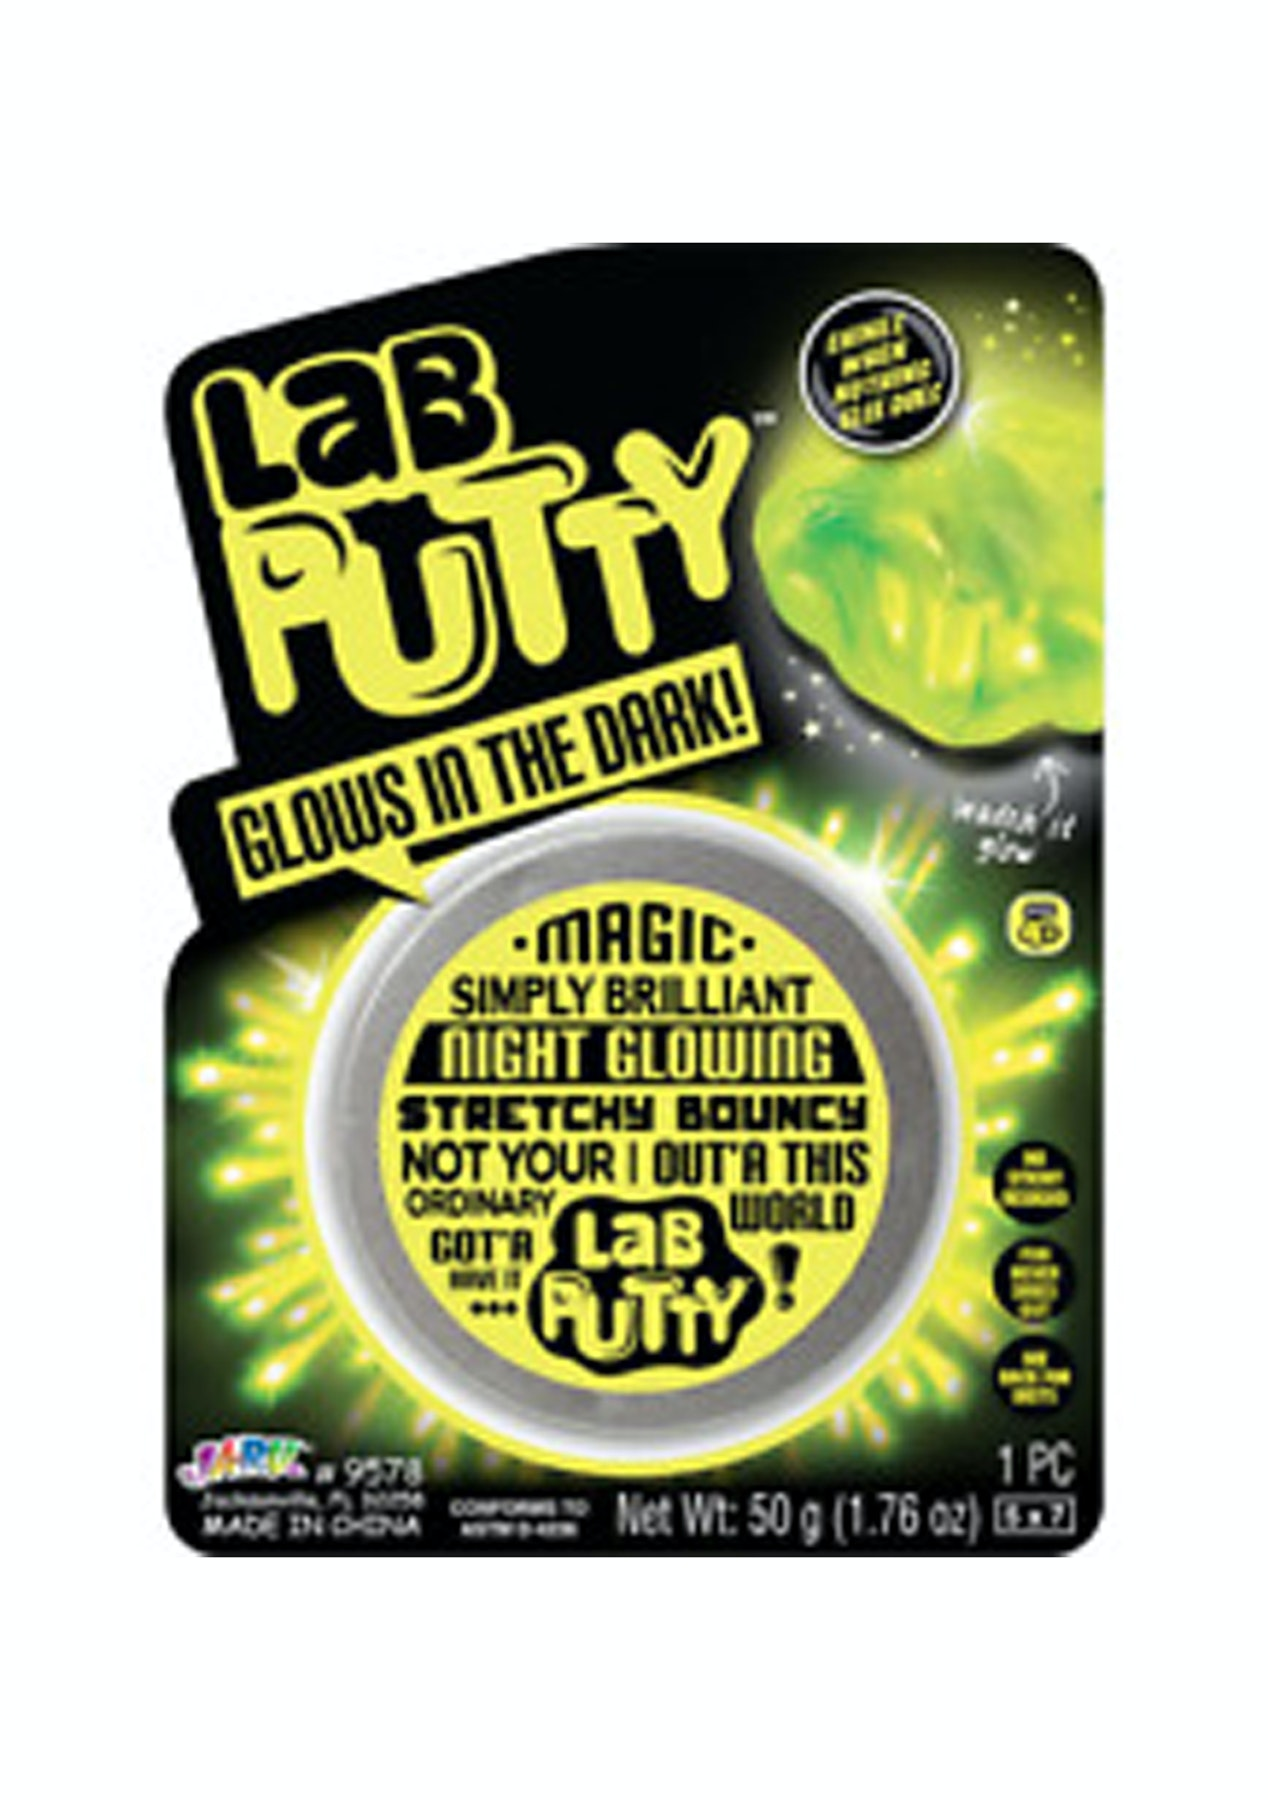 ce933f6a759 Lab Putty - Glow In The Dark - The Big Kids Christmas Gift Sale - Onceit